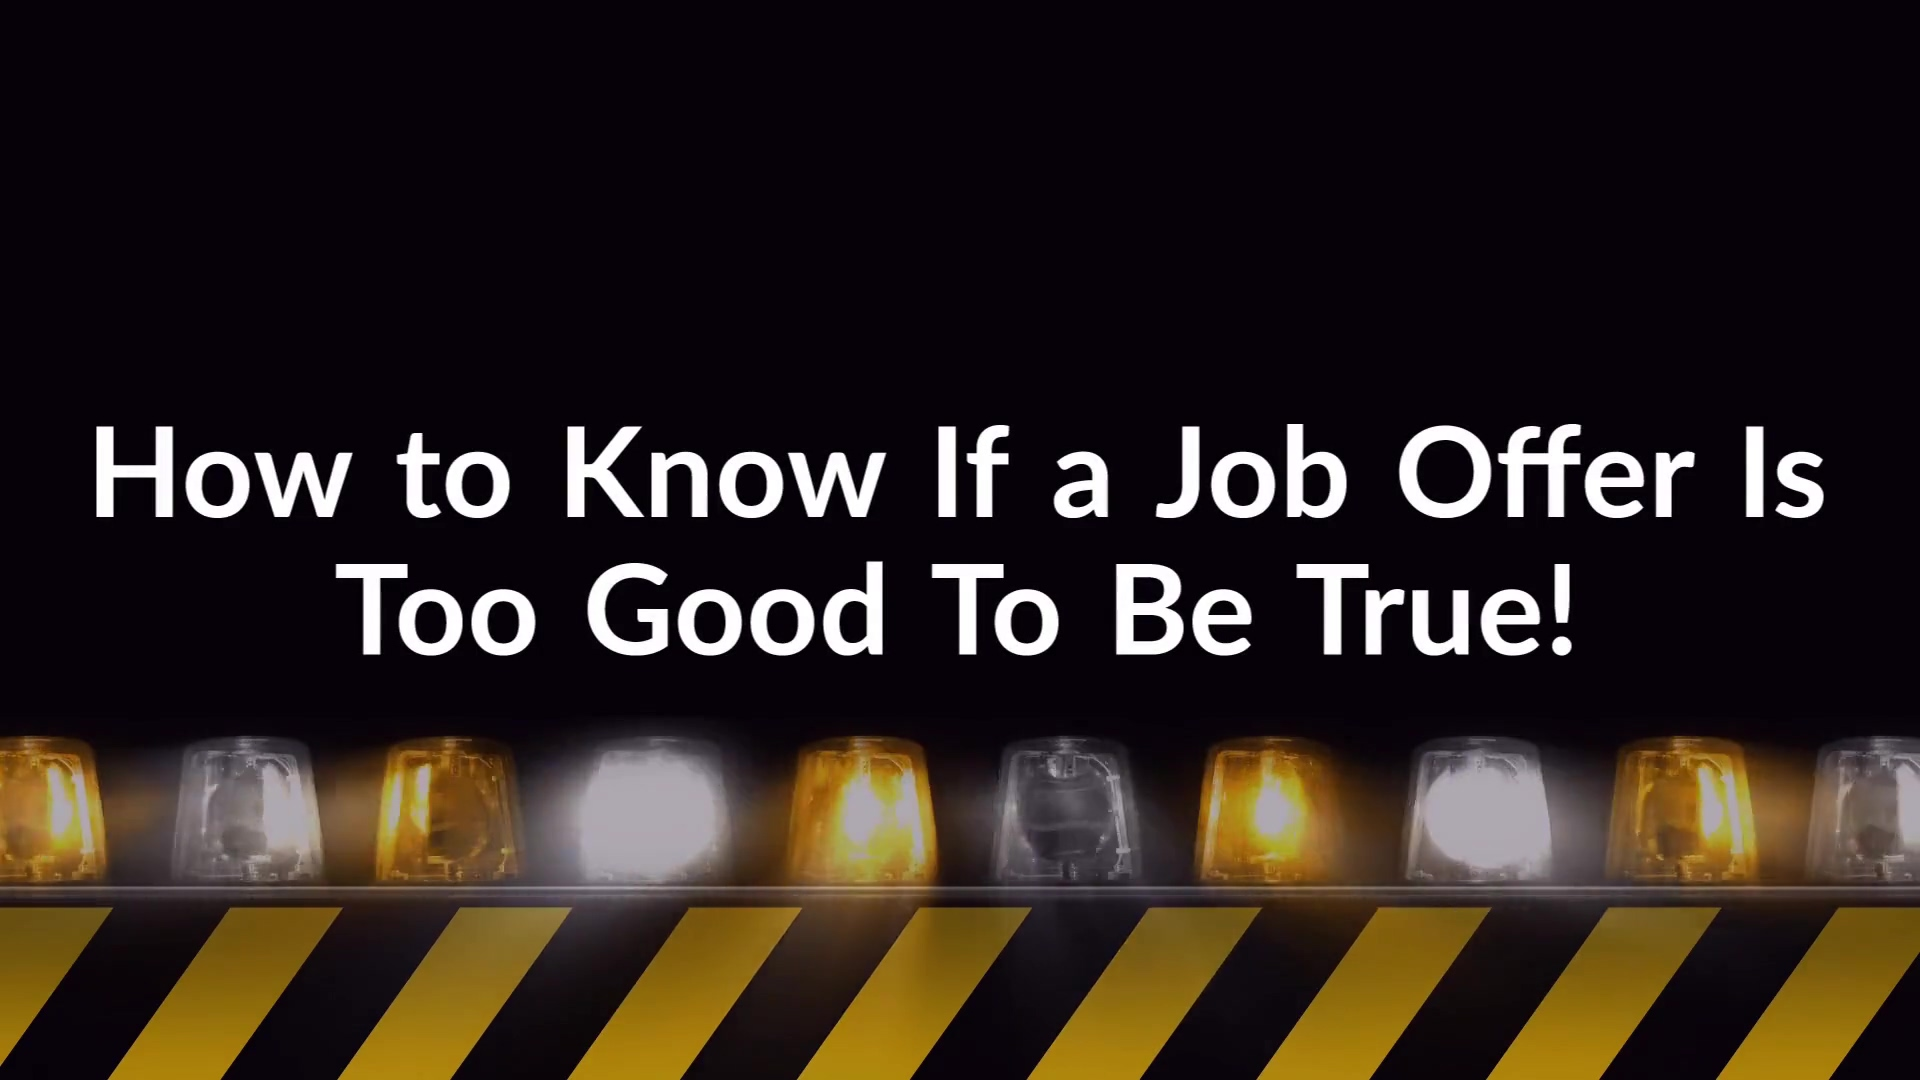 how-to-know-if-a-job-offer-is-too-good-to-be-true